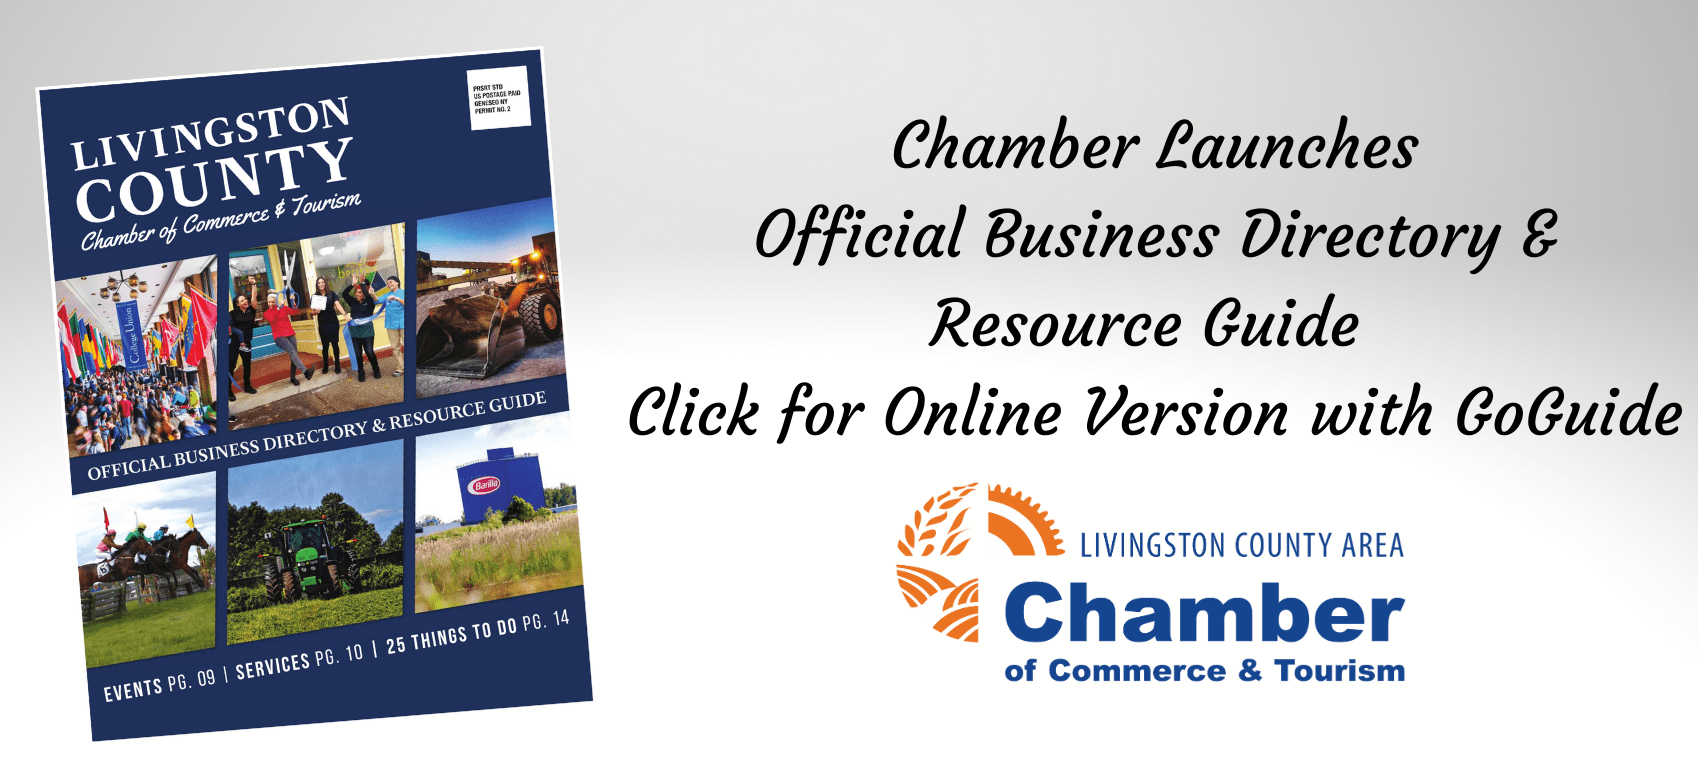 Chamber-Launches-Official-Business-Directory-and-Resource-Guide-Click-for-Online-Version-with-GoGuide-w1698.png